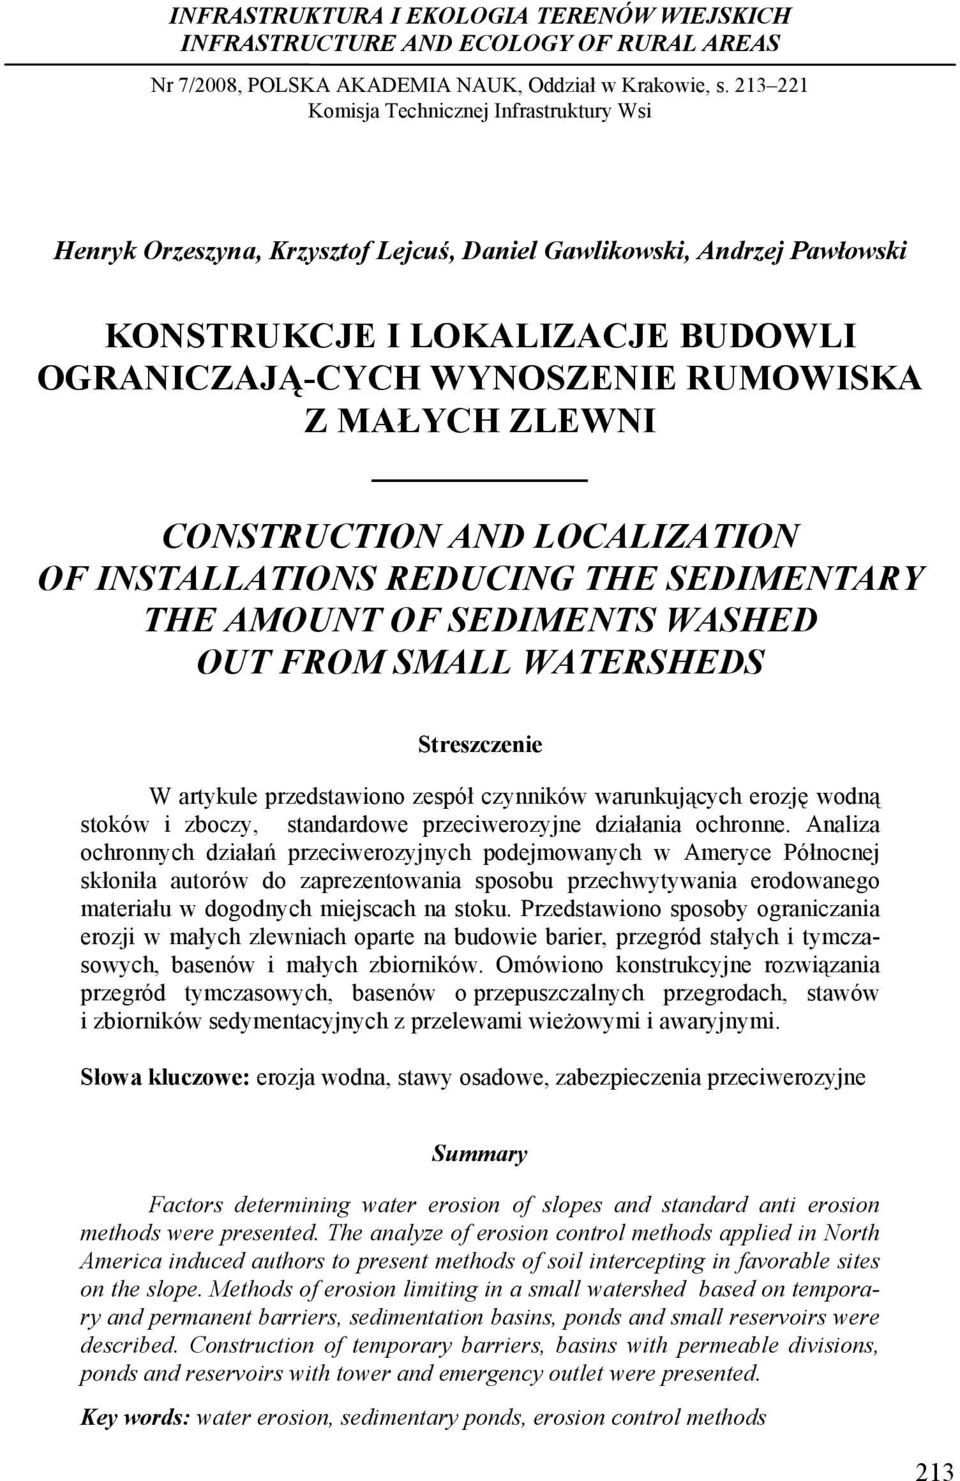 MAŁYCH ZLEWNI CONSTRUCTION AND LOCALIZATION OF INSTALLATIONS REDUCING THE SEDIMENTARY THE AMOUNT OF SEDIMENTS WASHED OUT FROM SMALL WATERSHEDS Streszczenie W artykule przedstawiono zespół czynników